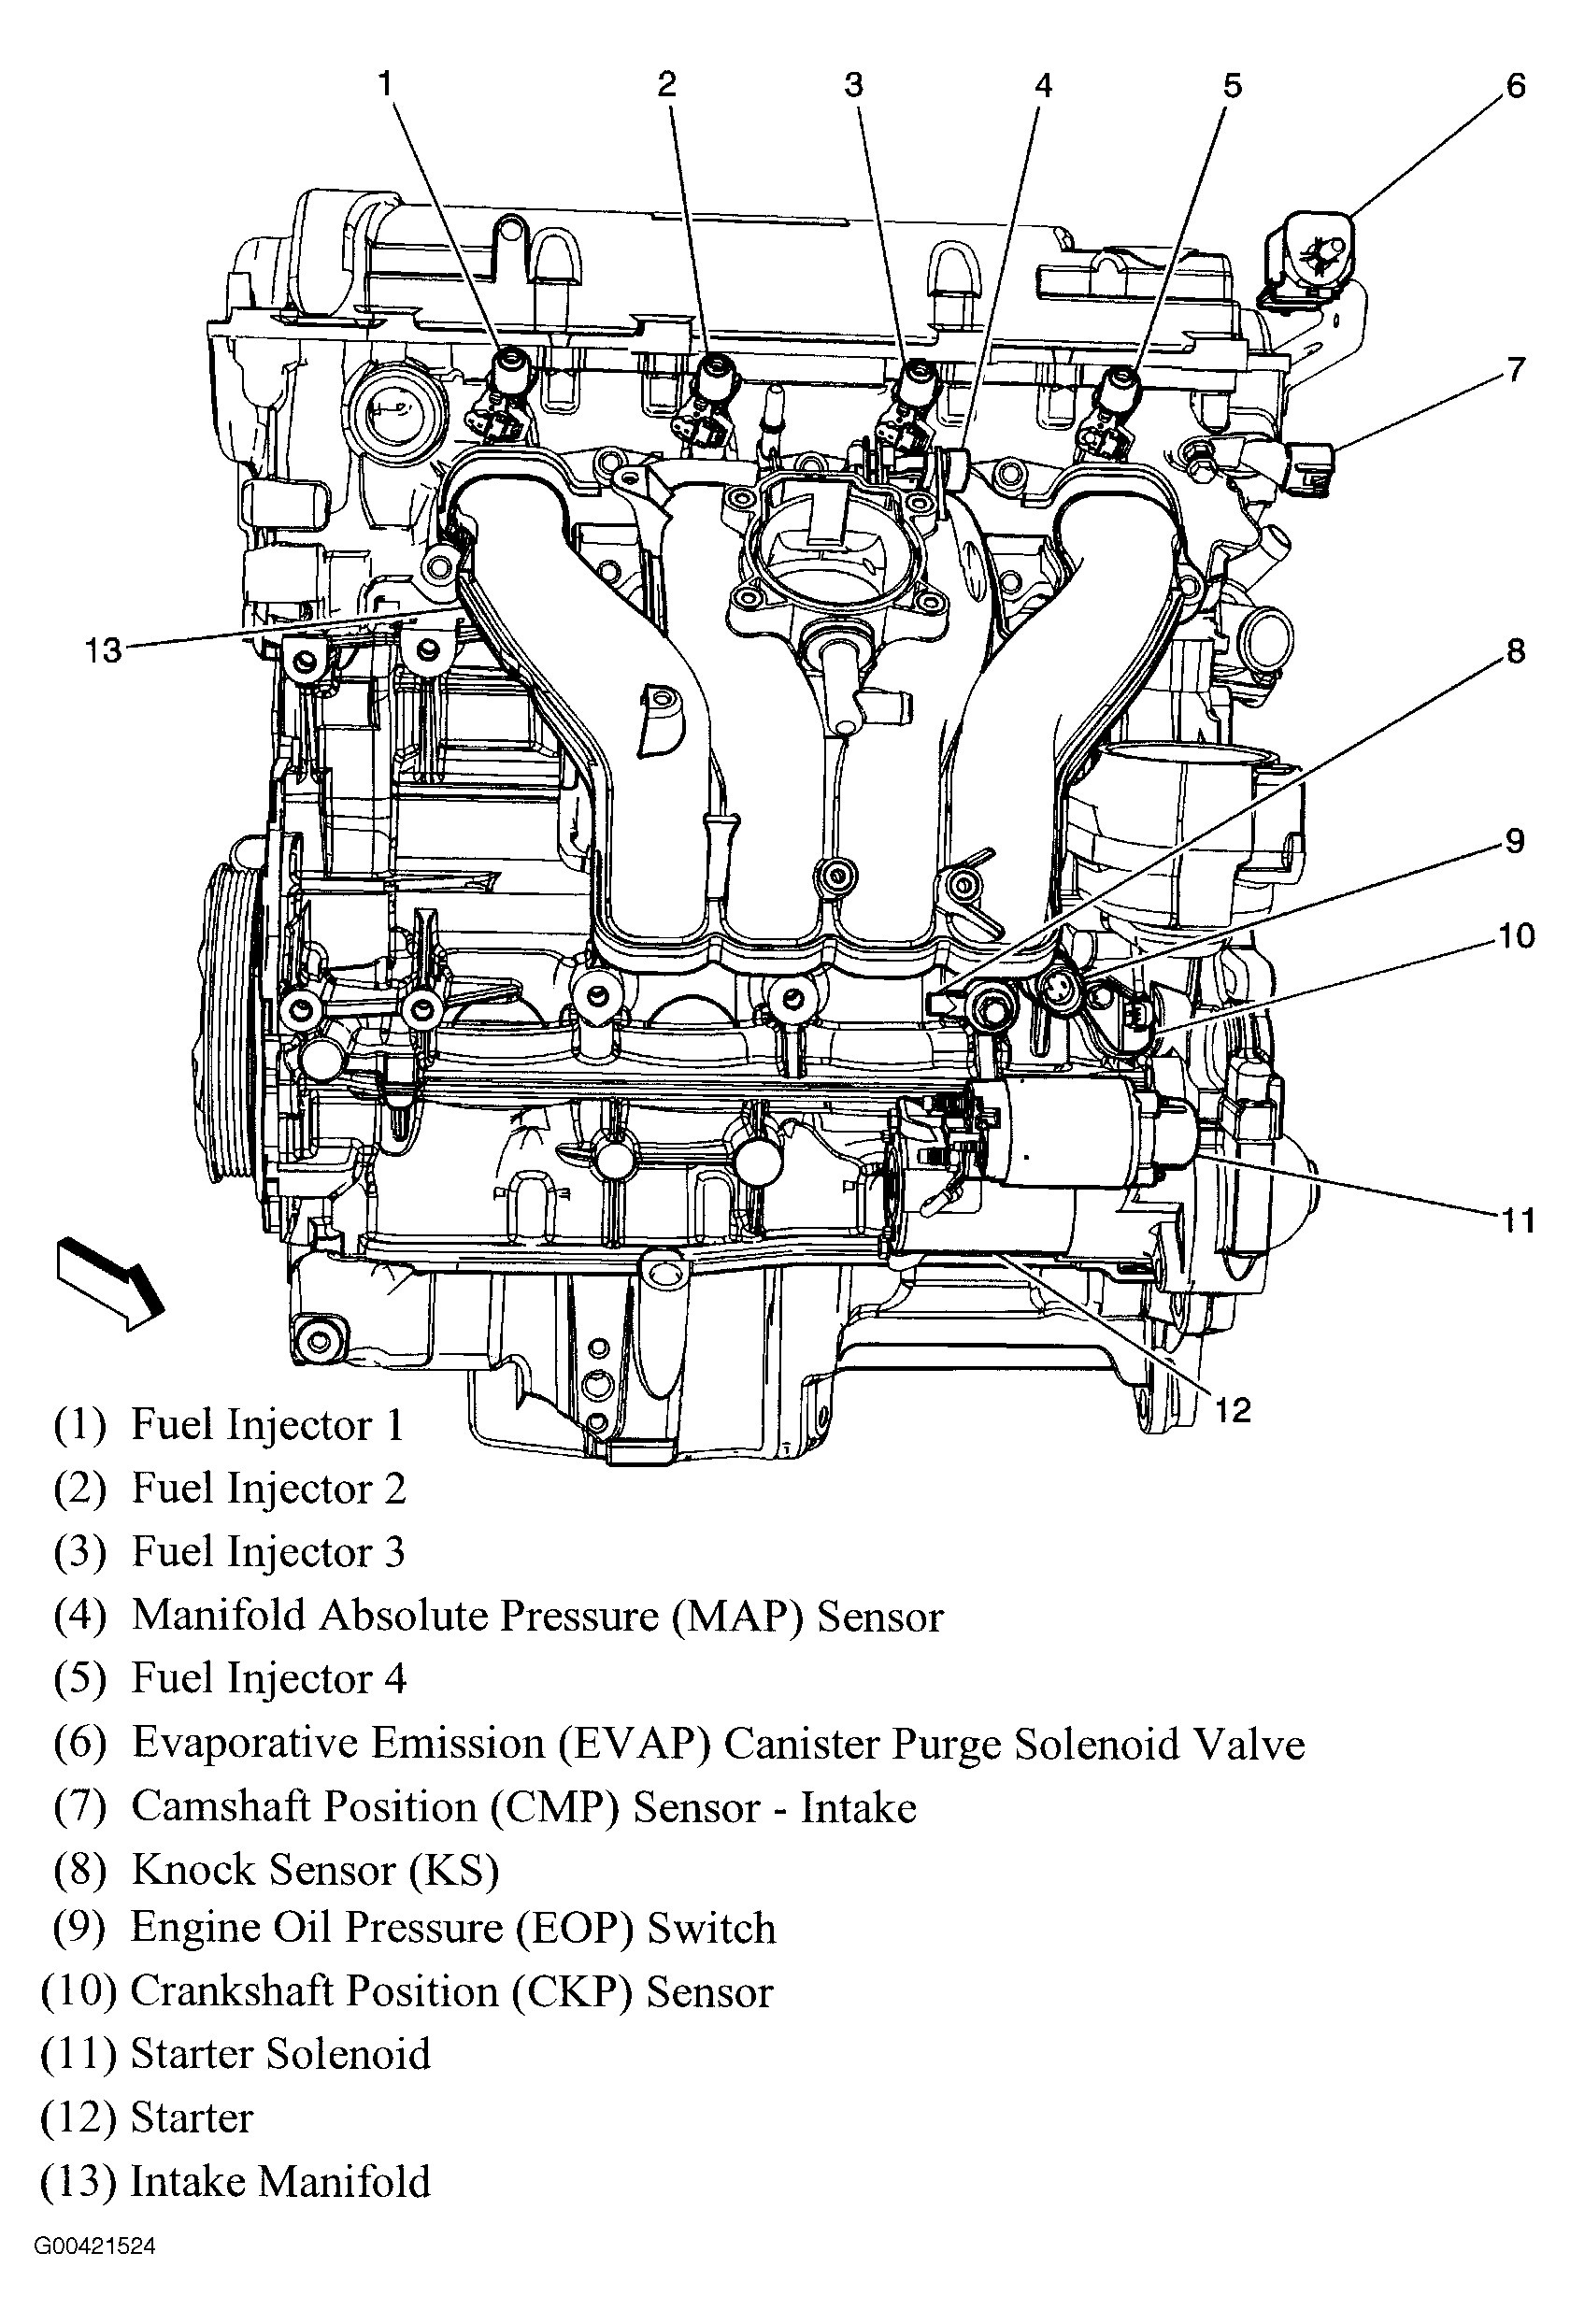 2010 chevy traverse fuel regulator wiring diagram diy enthusiasts rh okdrywall co 2011 traverse wiring diagram 2014 traverse wiring diagram